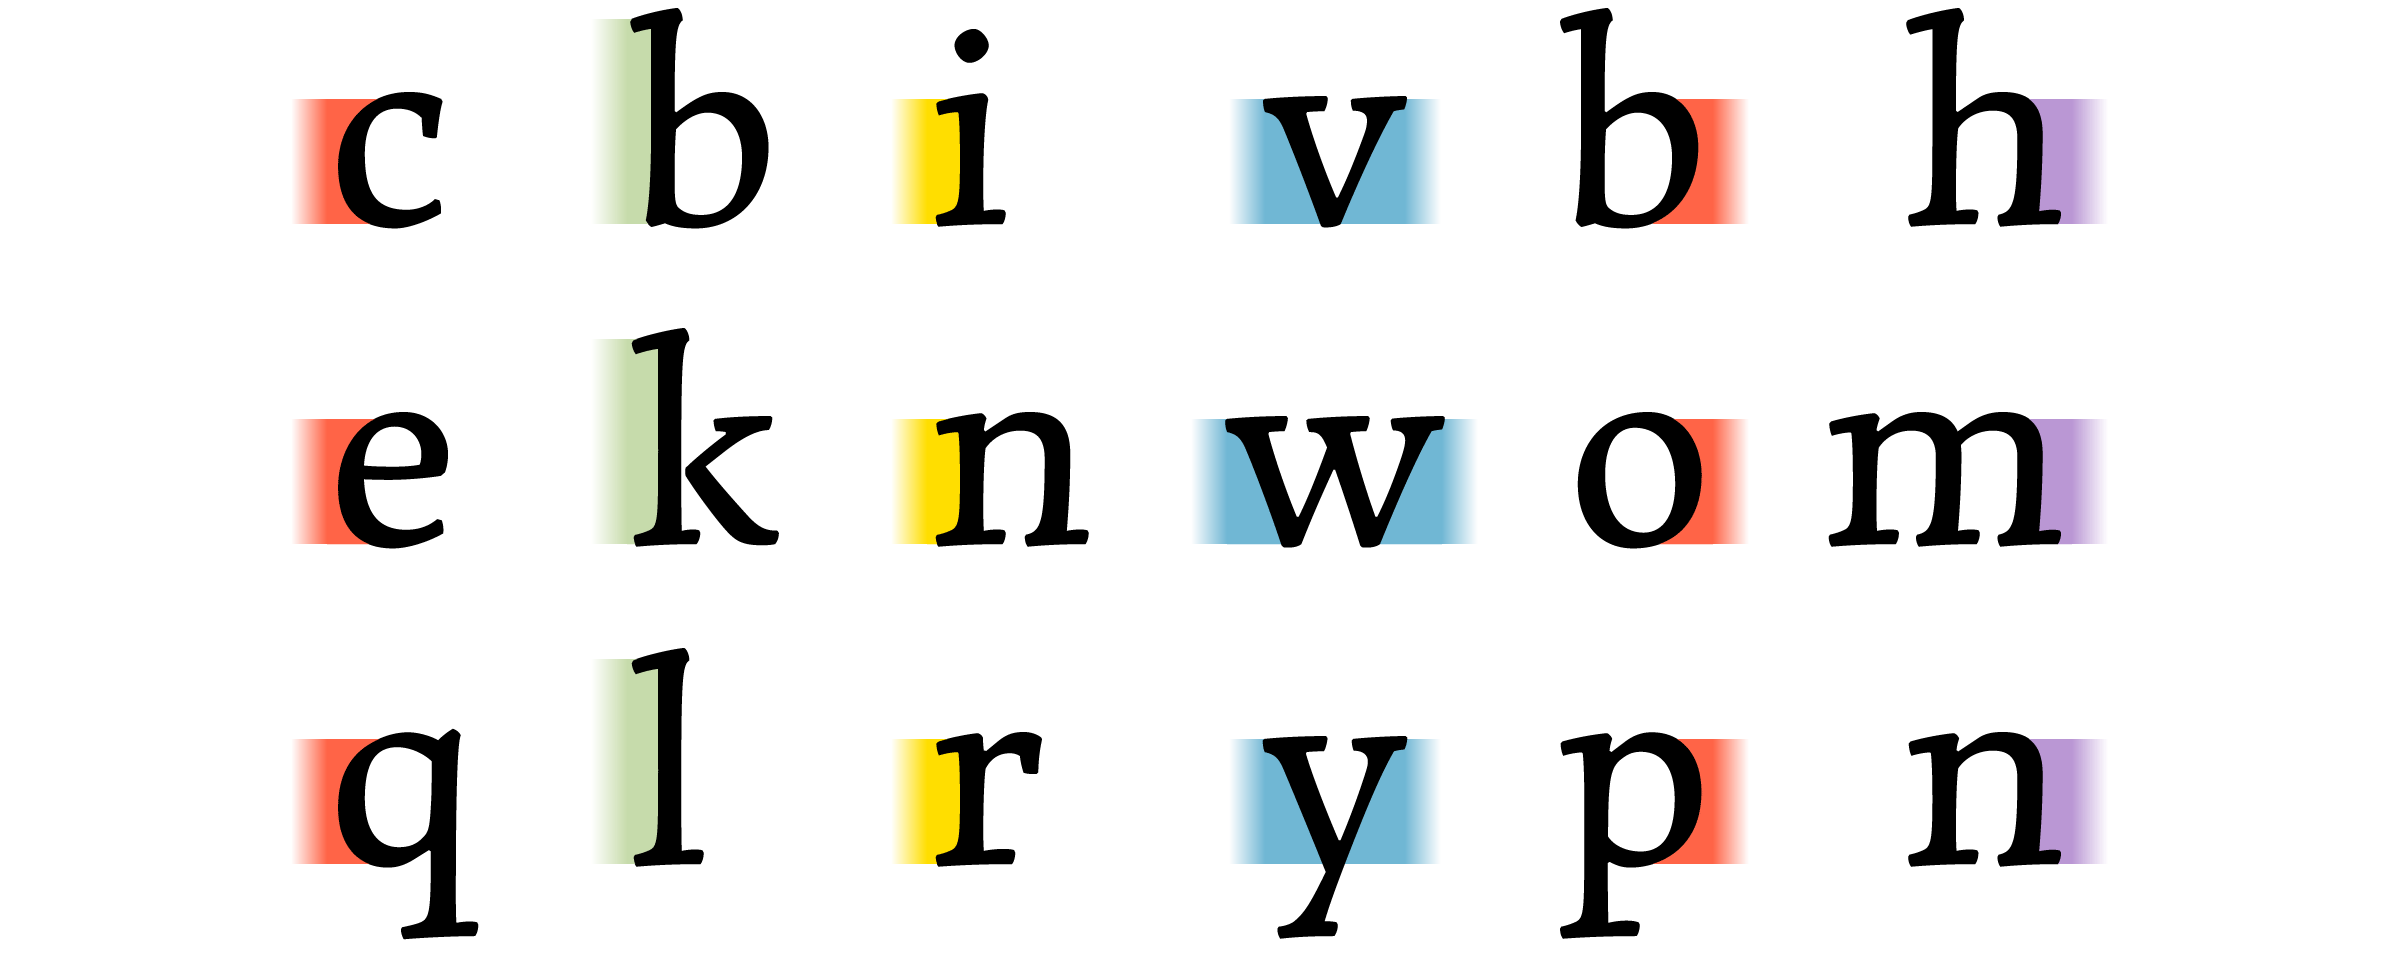 Even though the humanist letter forms in [Toshi Omagari](/designers/toshi-omagari)'s Venetian [Marco](/content/best-fonts-of-2015) are far more intricate and 'irregular' than the comparatively simpler ones in sans serifs, each vertical row shows how the marked spaces are of a similar shape. This phenomenon is very helpful in spacing glyphs consistently throughout a typeface.